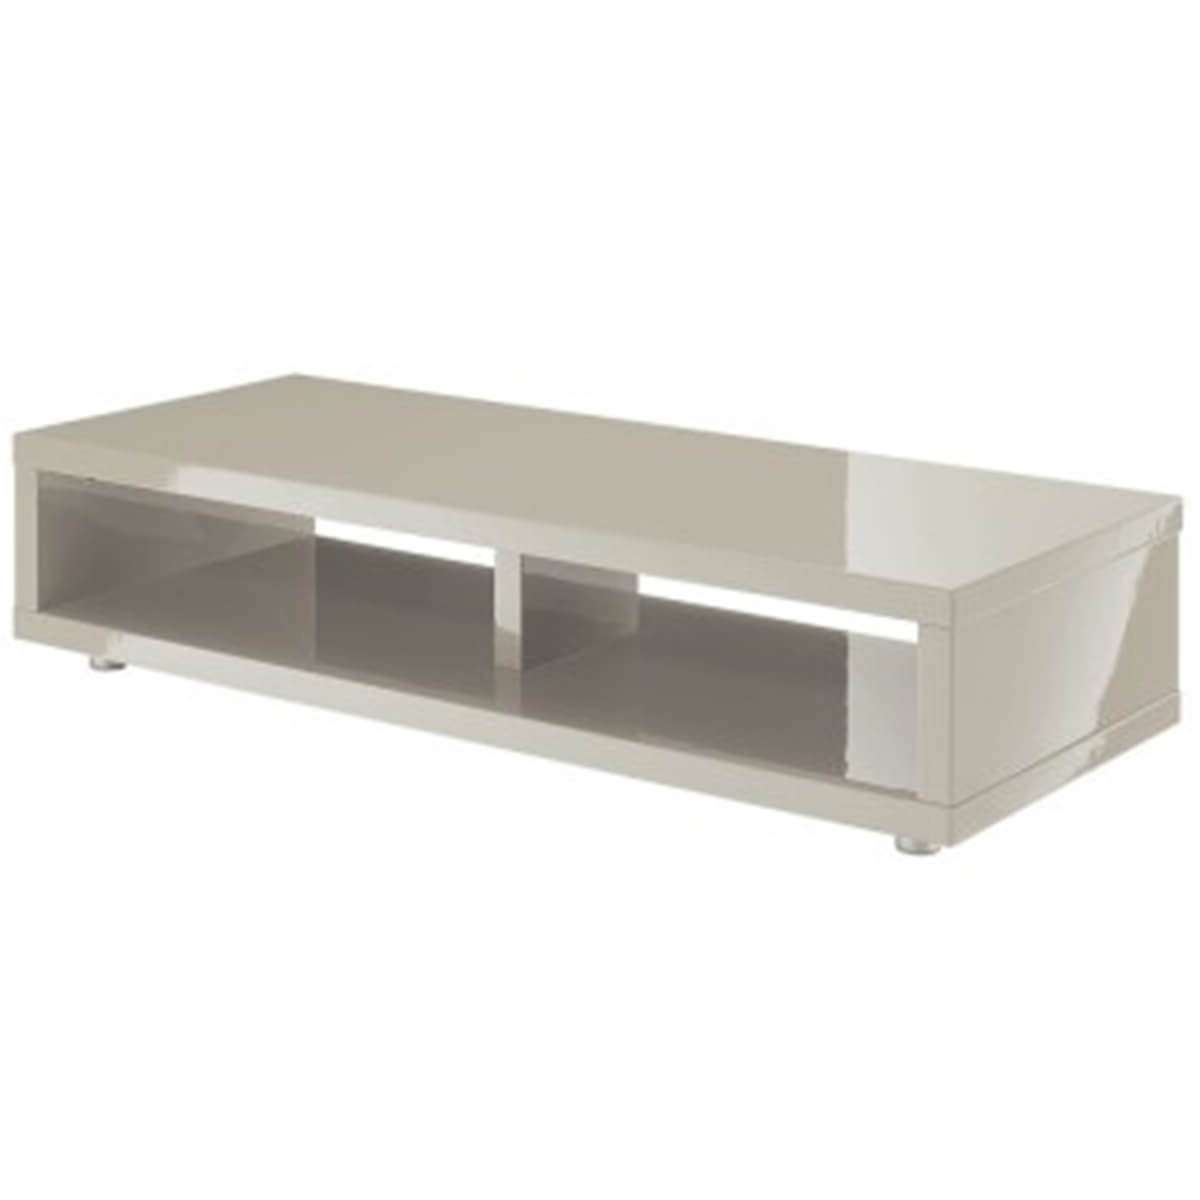 Puro High Gloss Tv Media Unit Stone Or Cream | Fads Pertaining To Cream High Gloss Tv Cabinets (View 12 of 20)